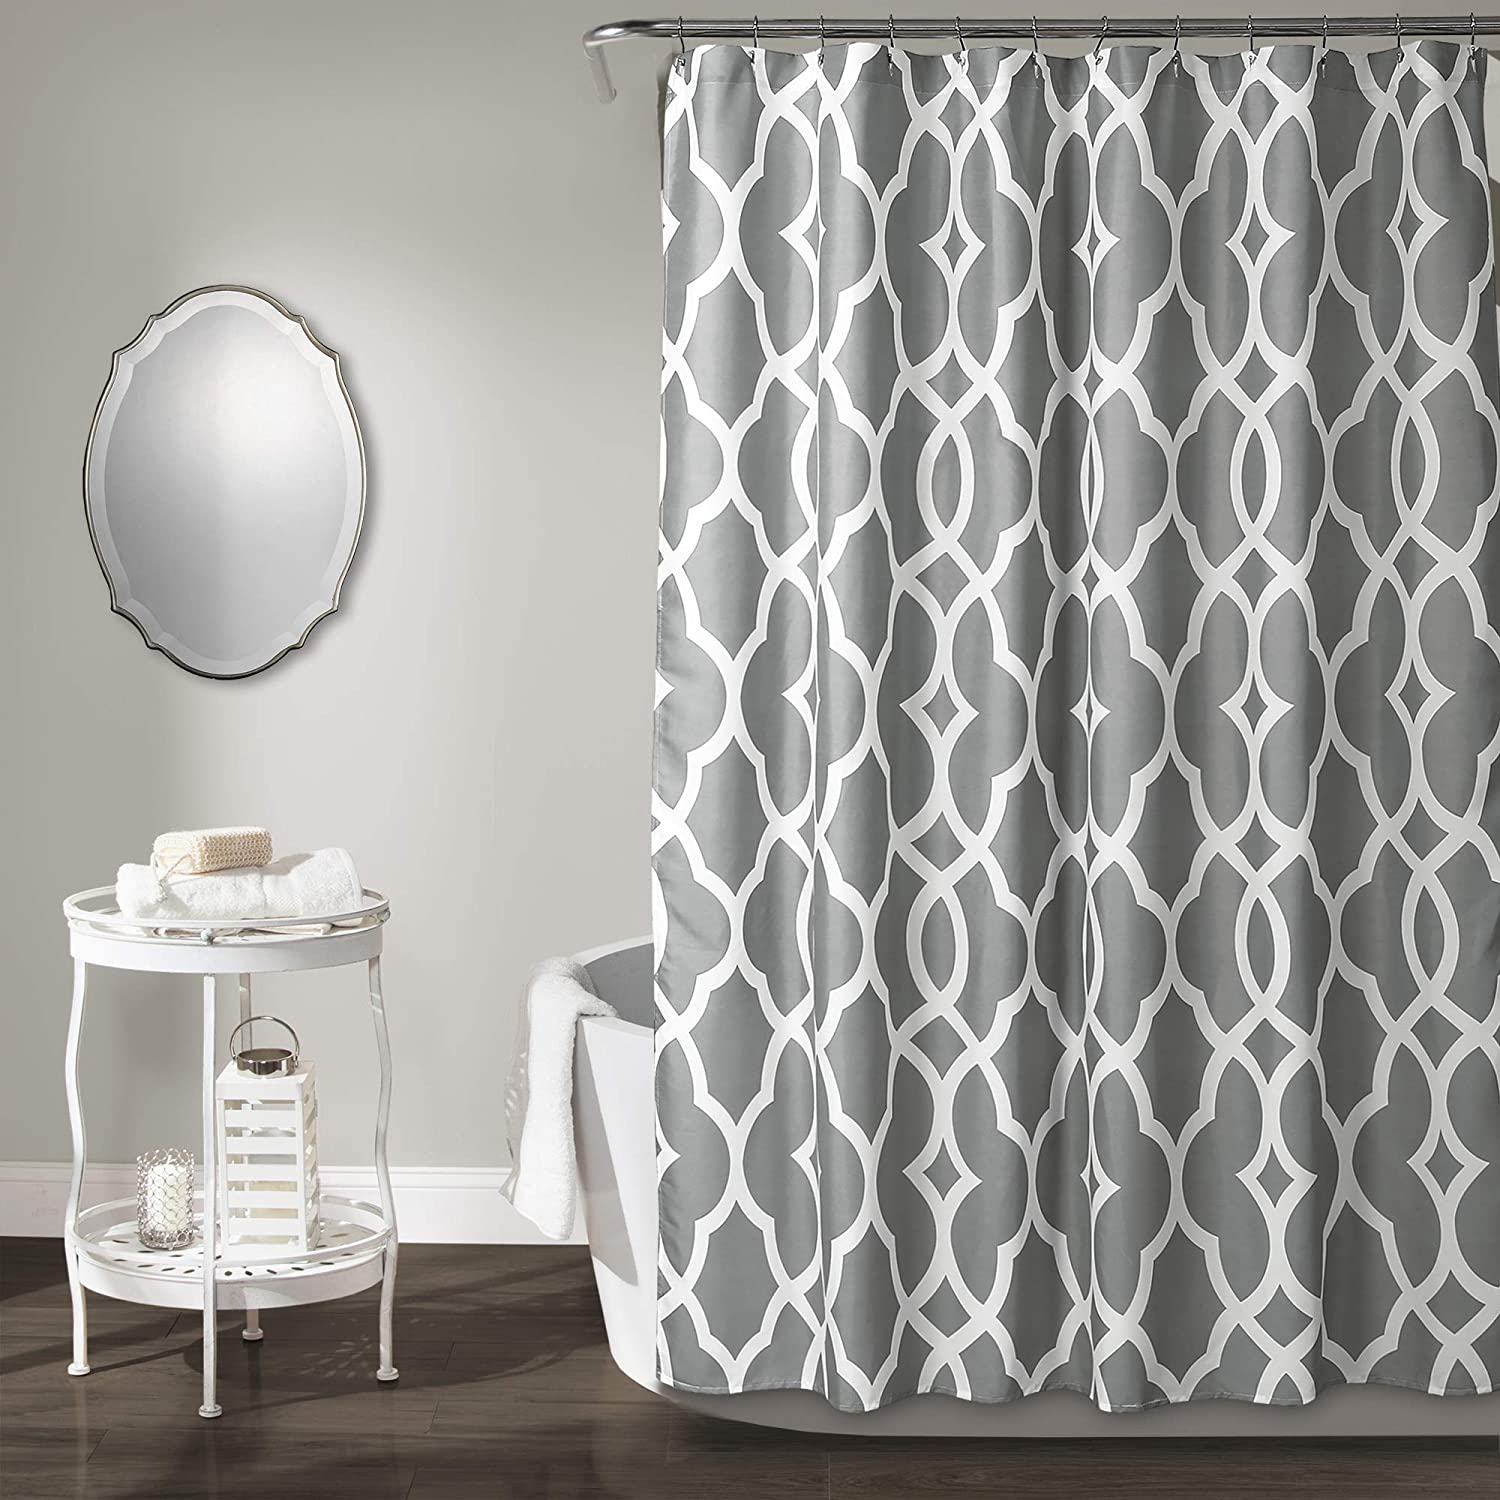 Lush Beauty products Decor Gorgeous Gray Connor Geo x Curtain Shower 72